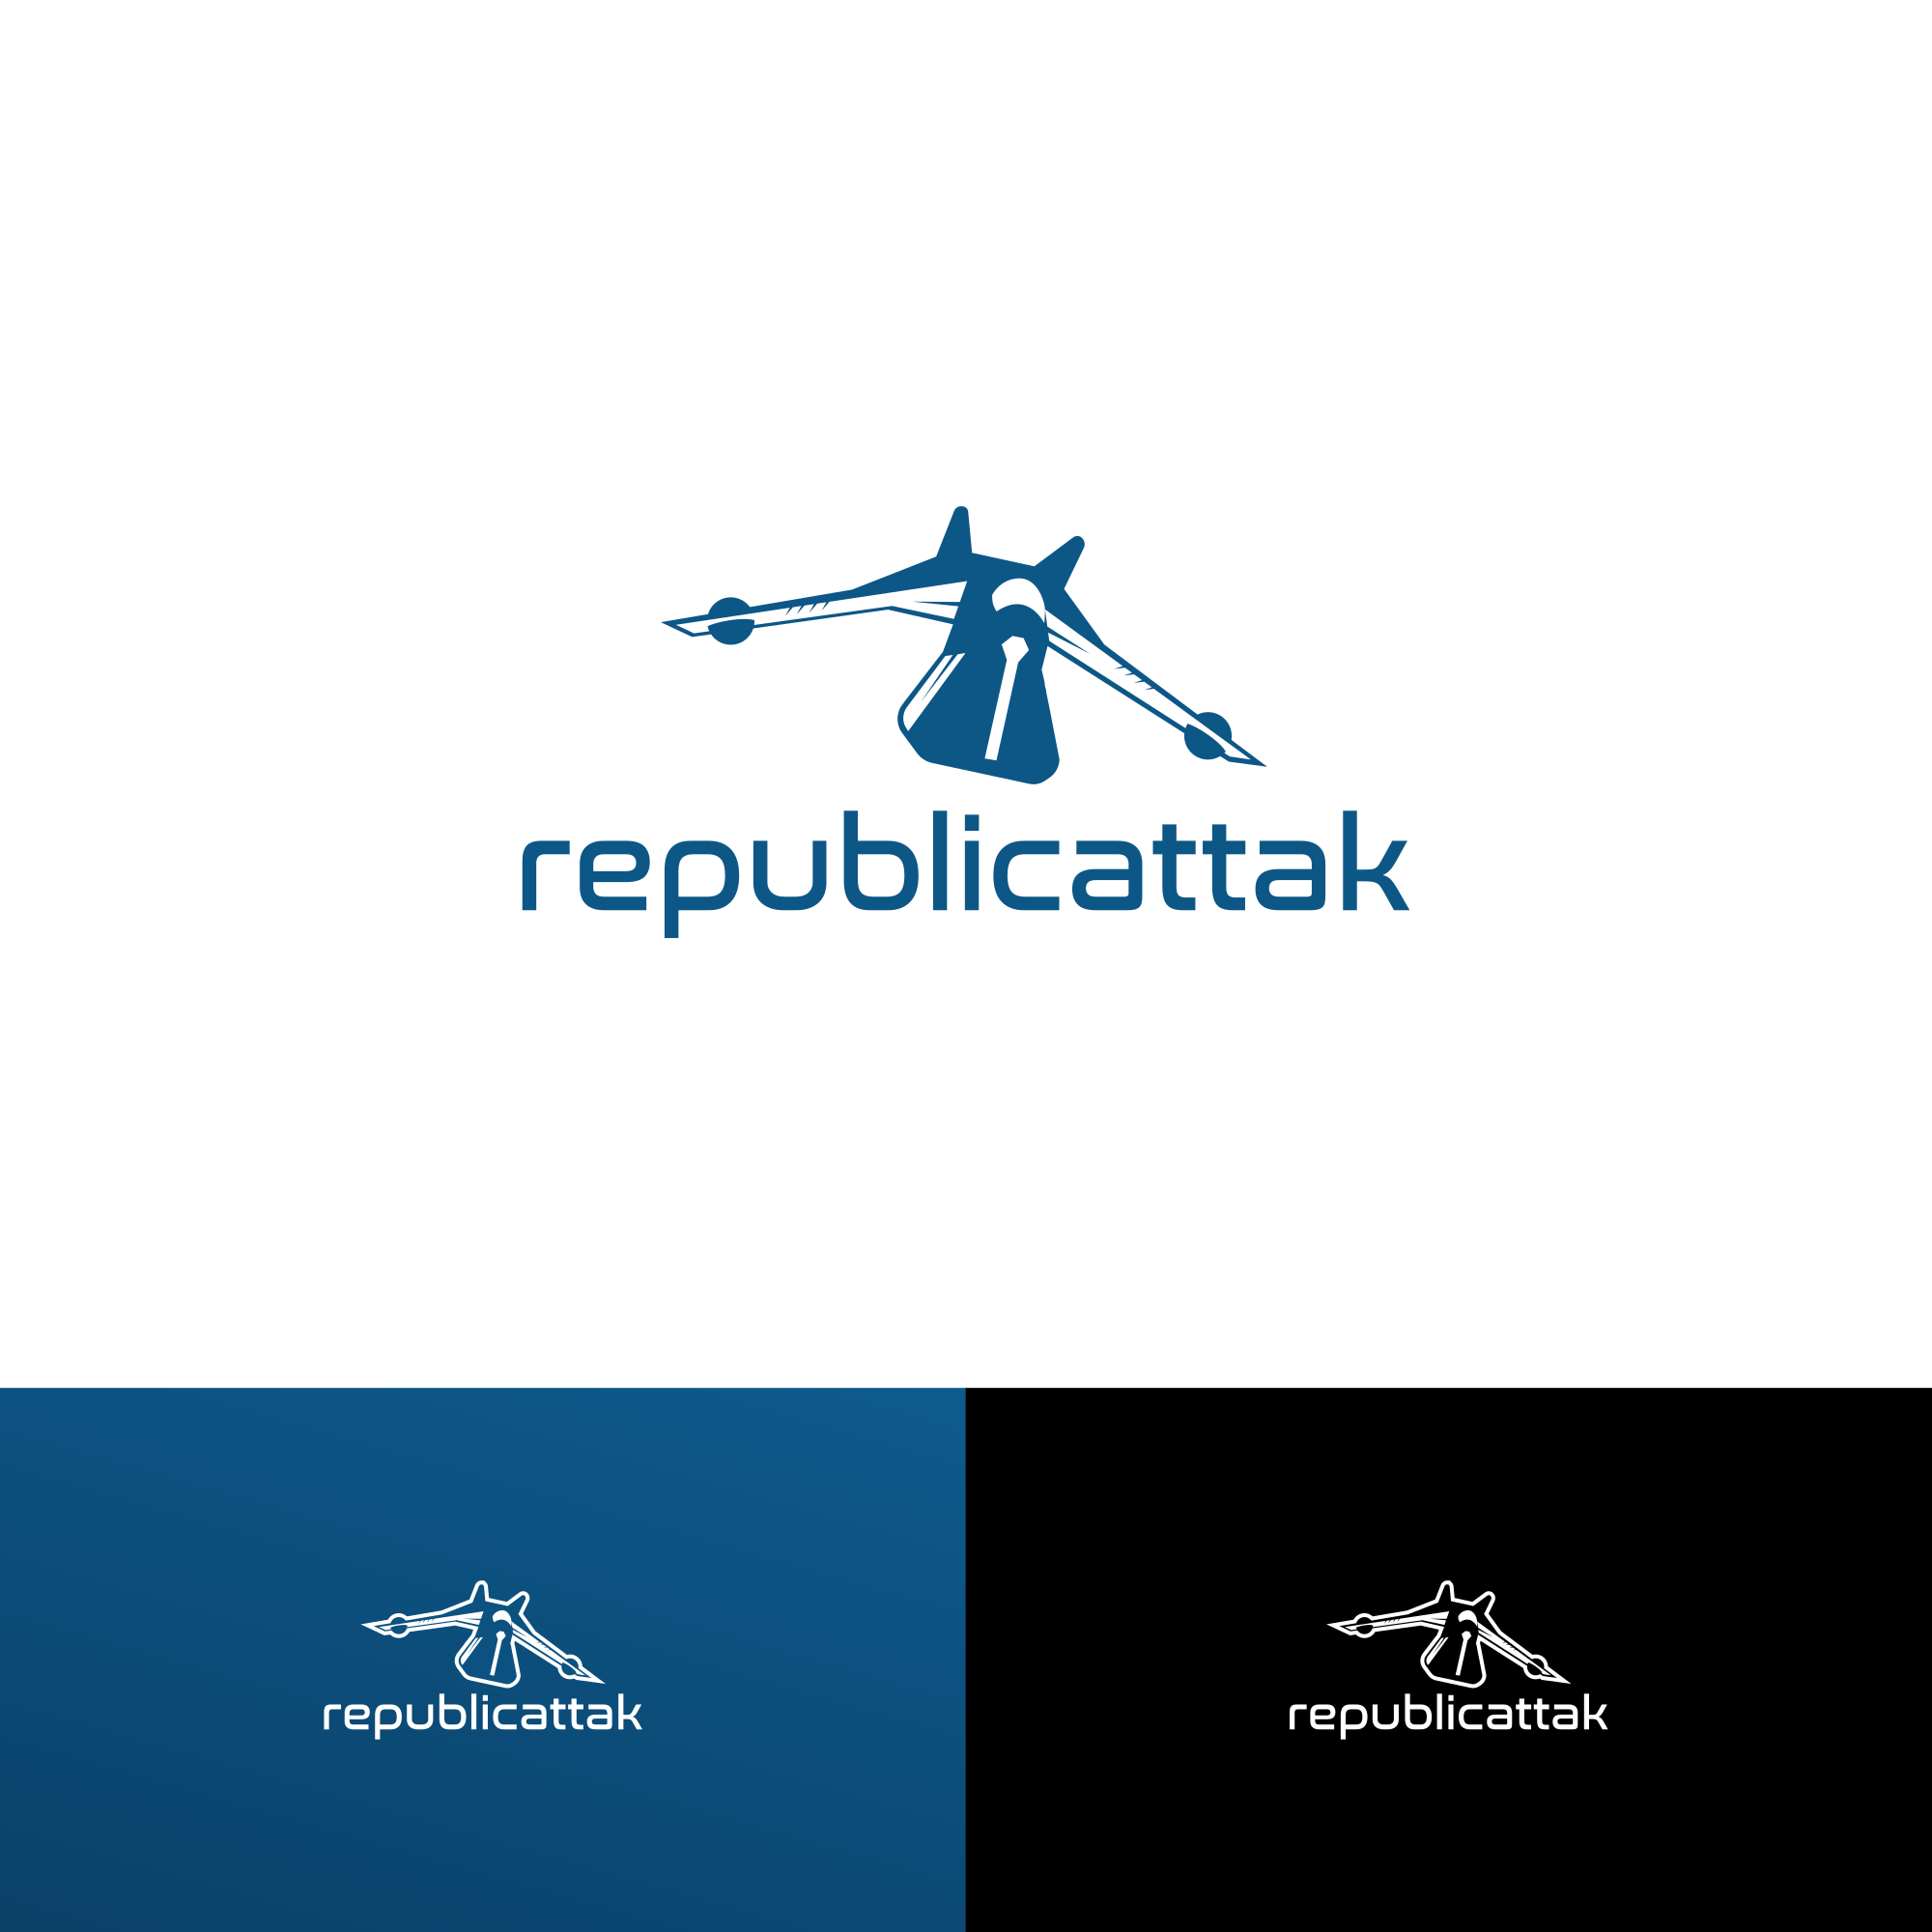 Create a logo for a YouTube channel: republicattak